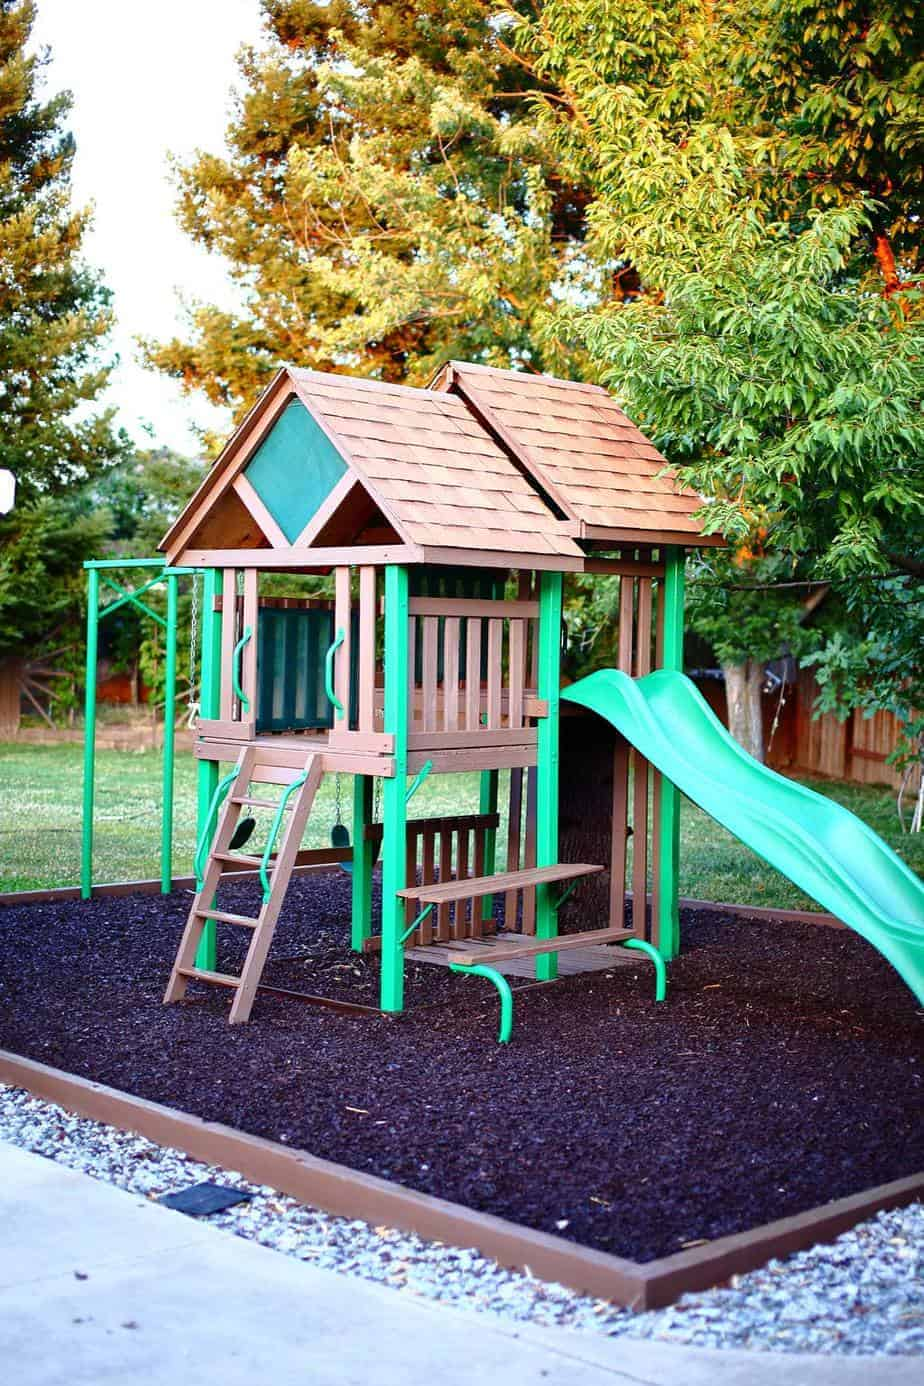 How To Build A Diy Backyard Playground For Kids Thediyplan